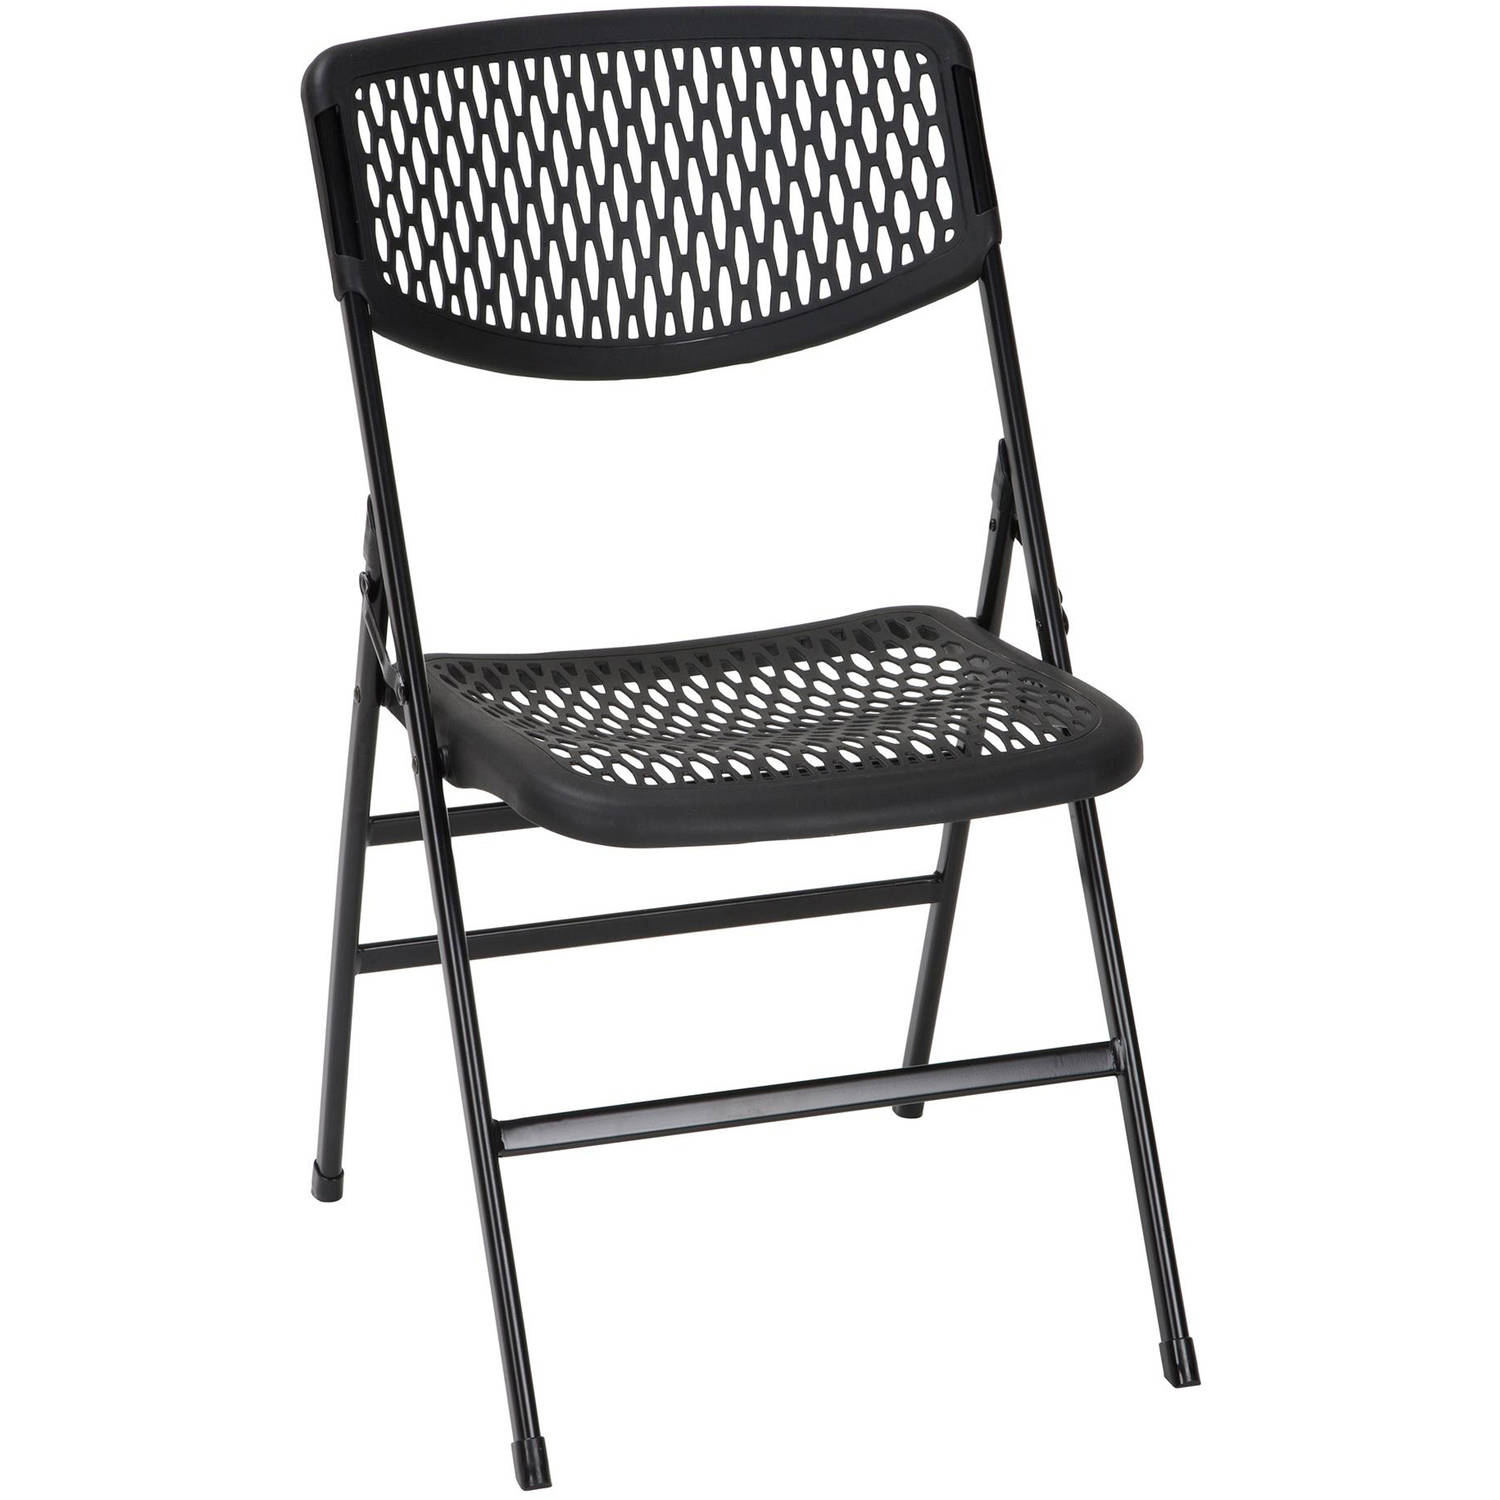 Charmant Cosco Commercial Resin Mesh Folding Chair, 4 Pack, Multiple Colors